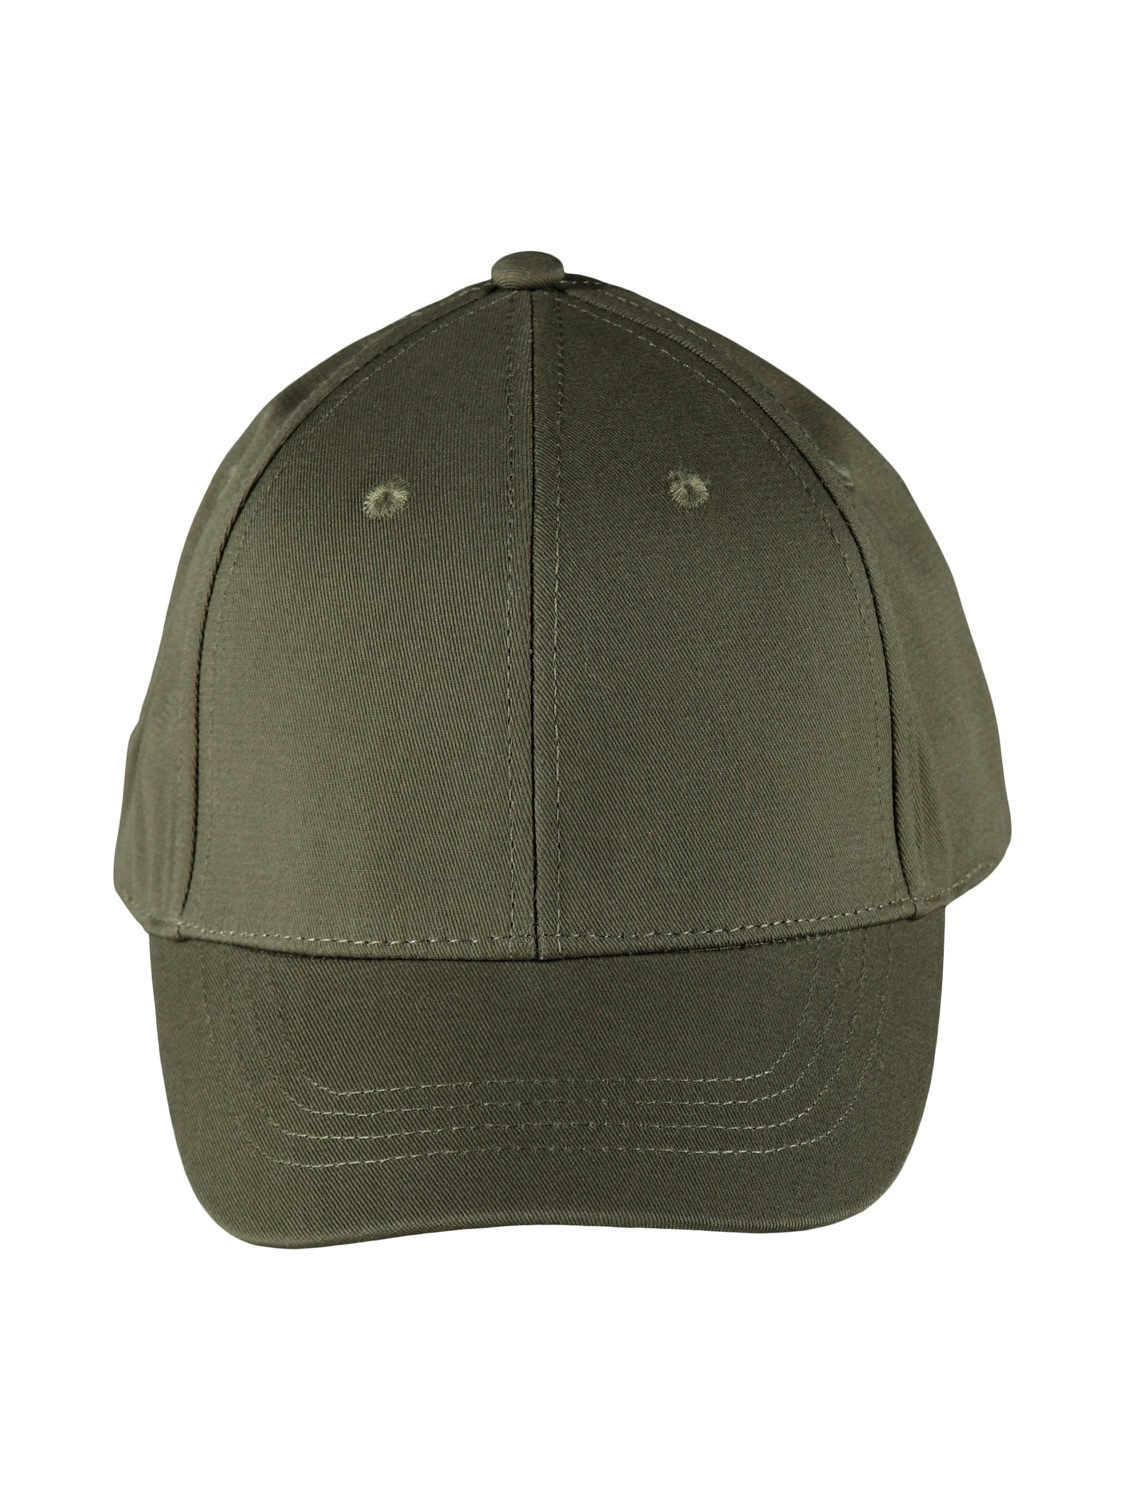 Furme Cap Kids - Ivy Green